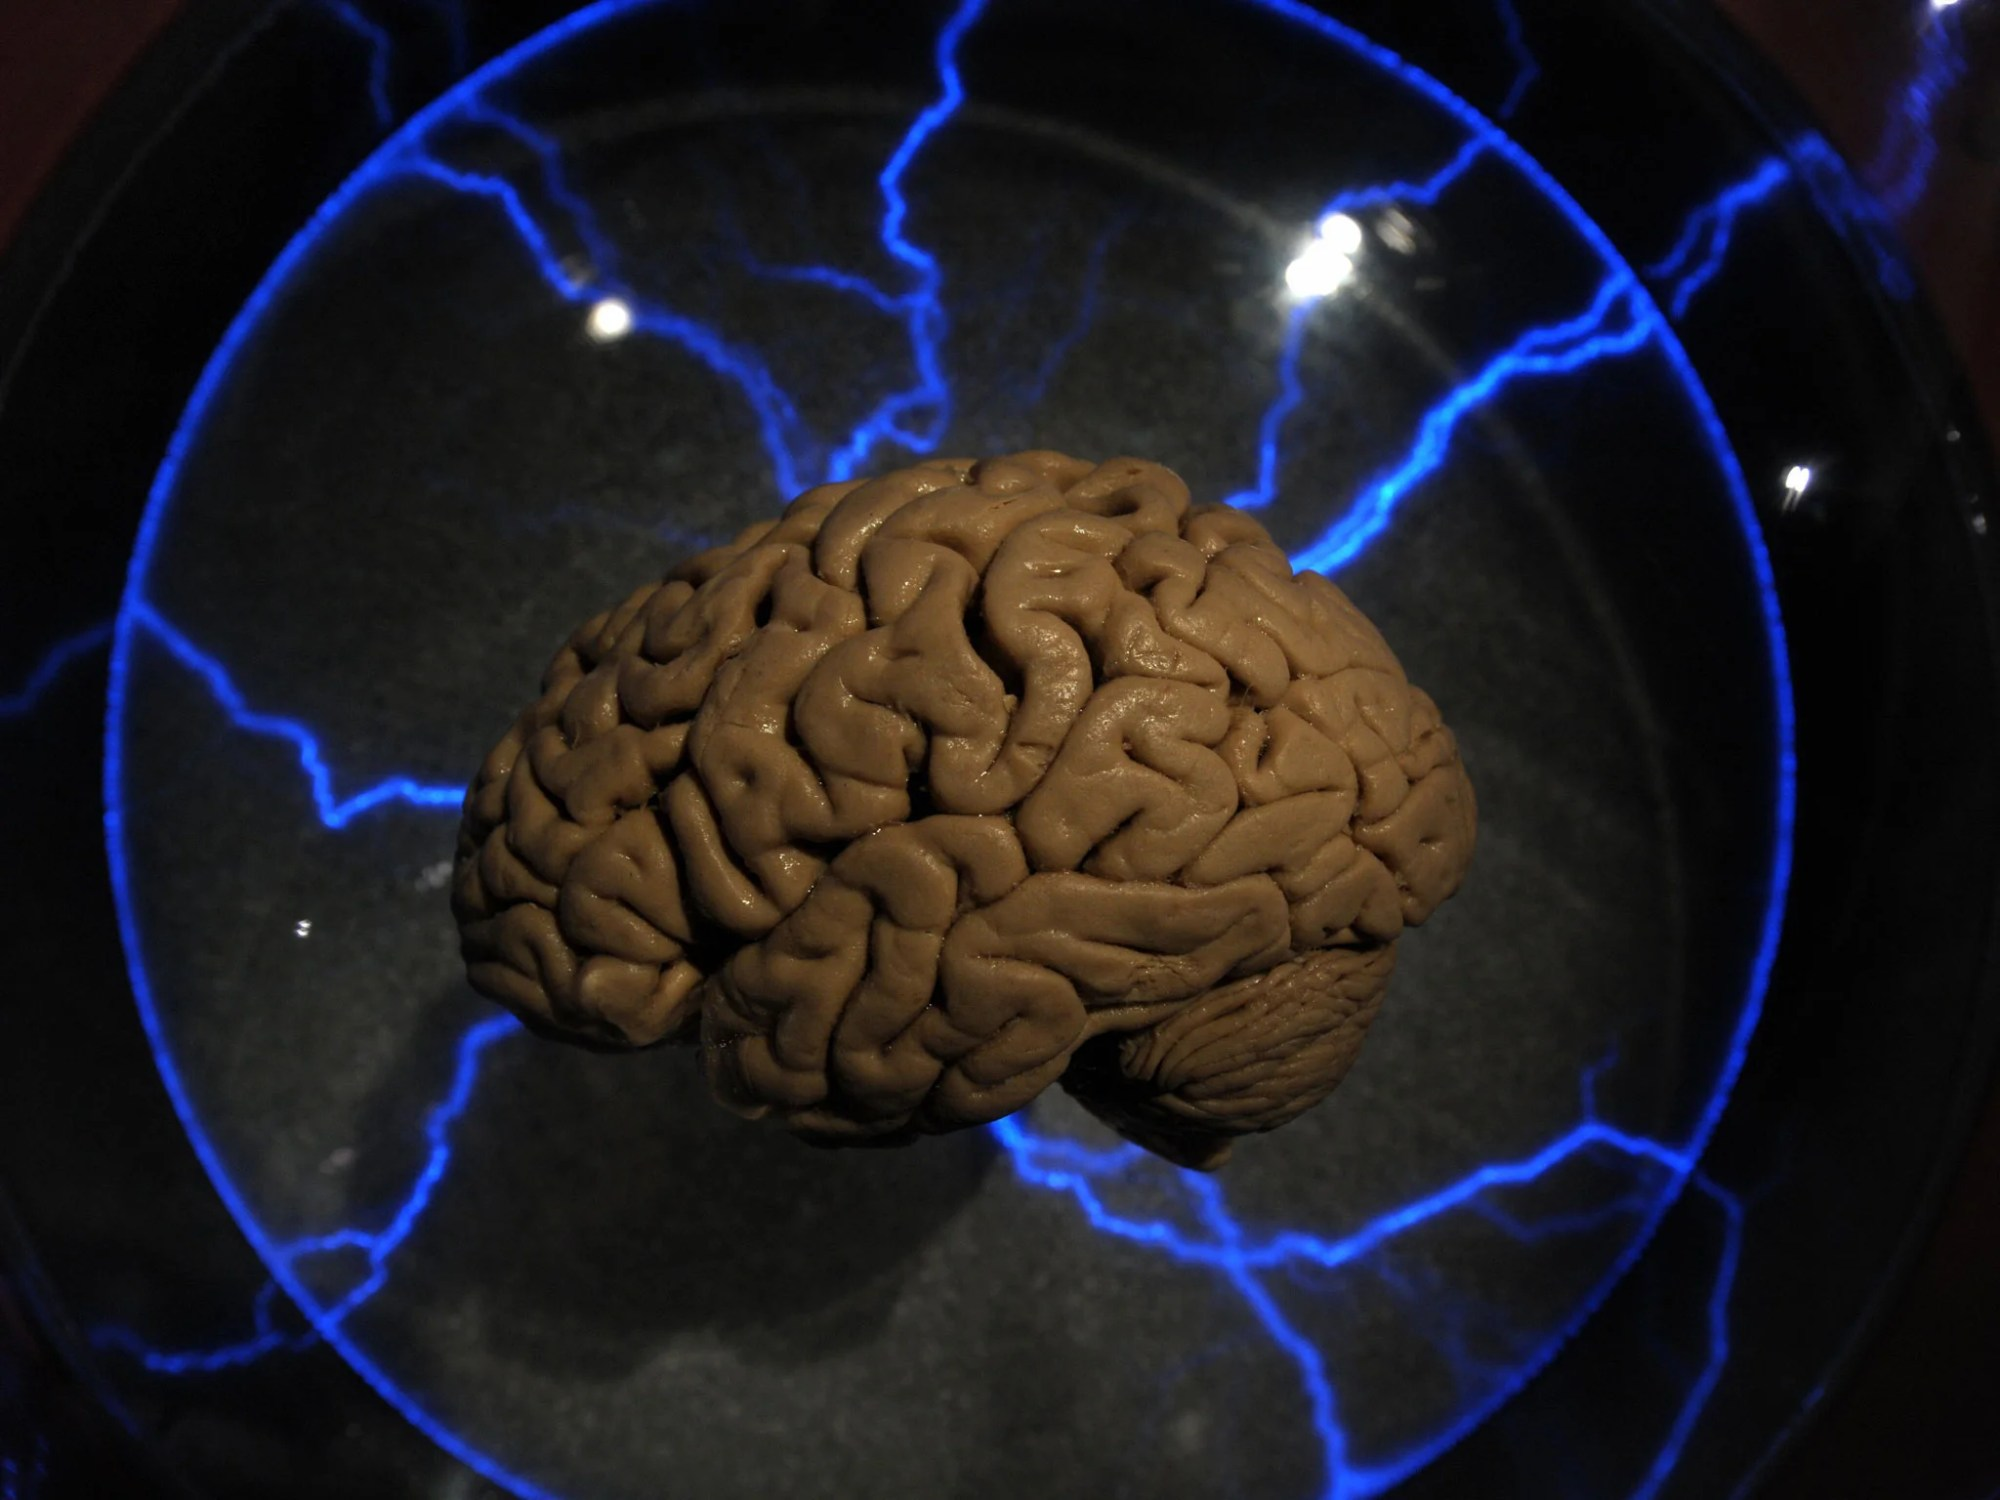 hight resolution of brain treats rejection like physical pain say scientists